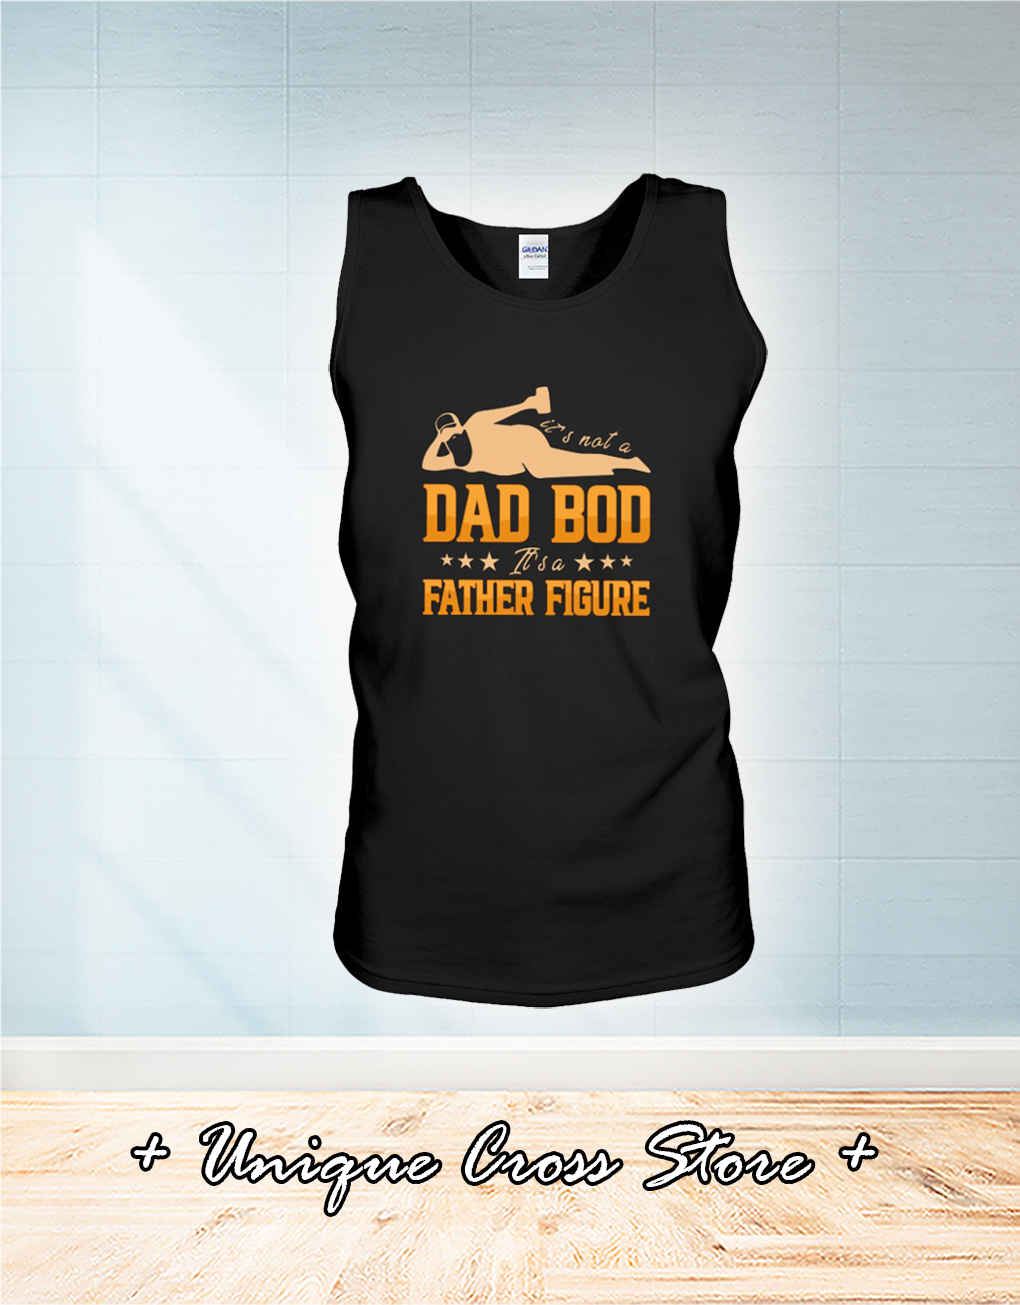 It's Not A Dad Bod It's A Father Figure tank